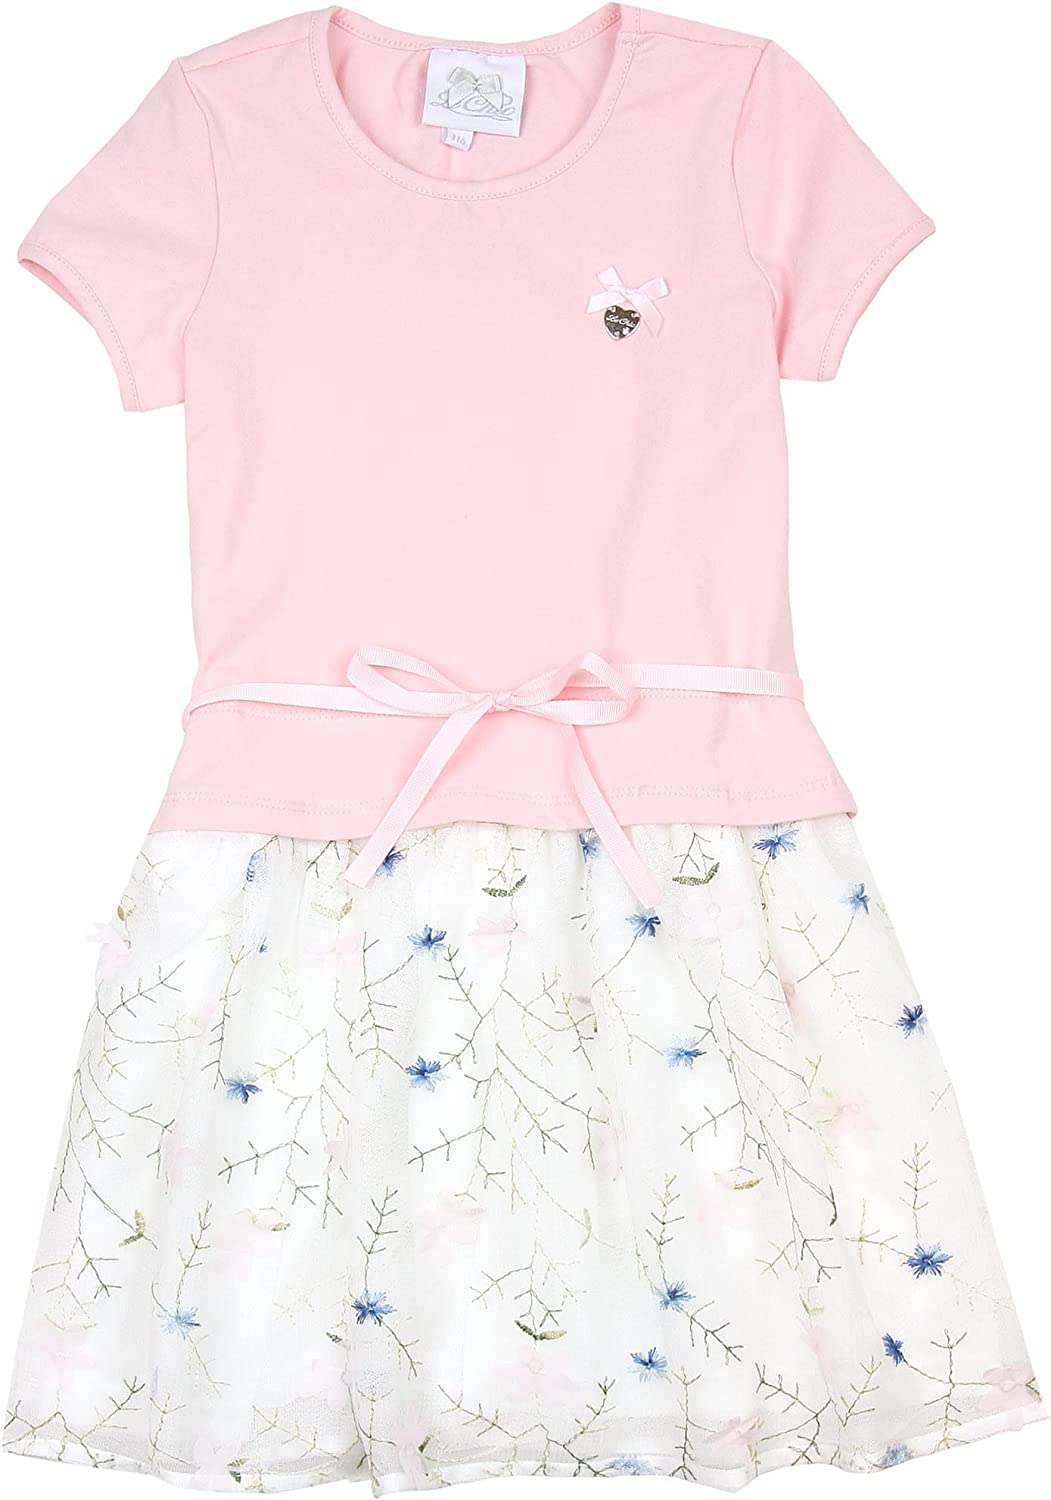 Le Award Chic Girl's Embroidered Tulle 4-14 Limited time for free shipping Sizes Pink Dress in